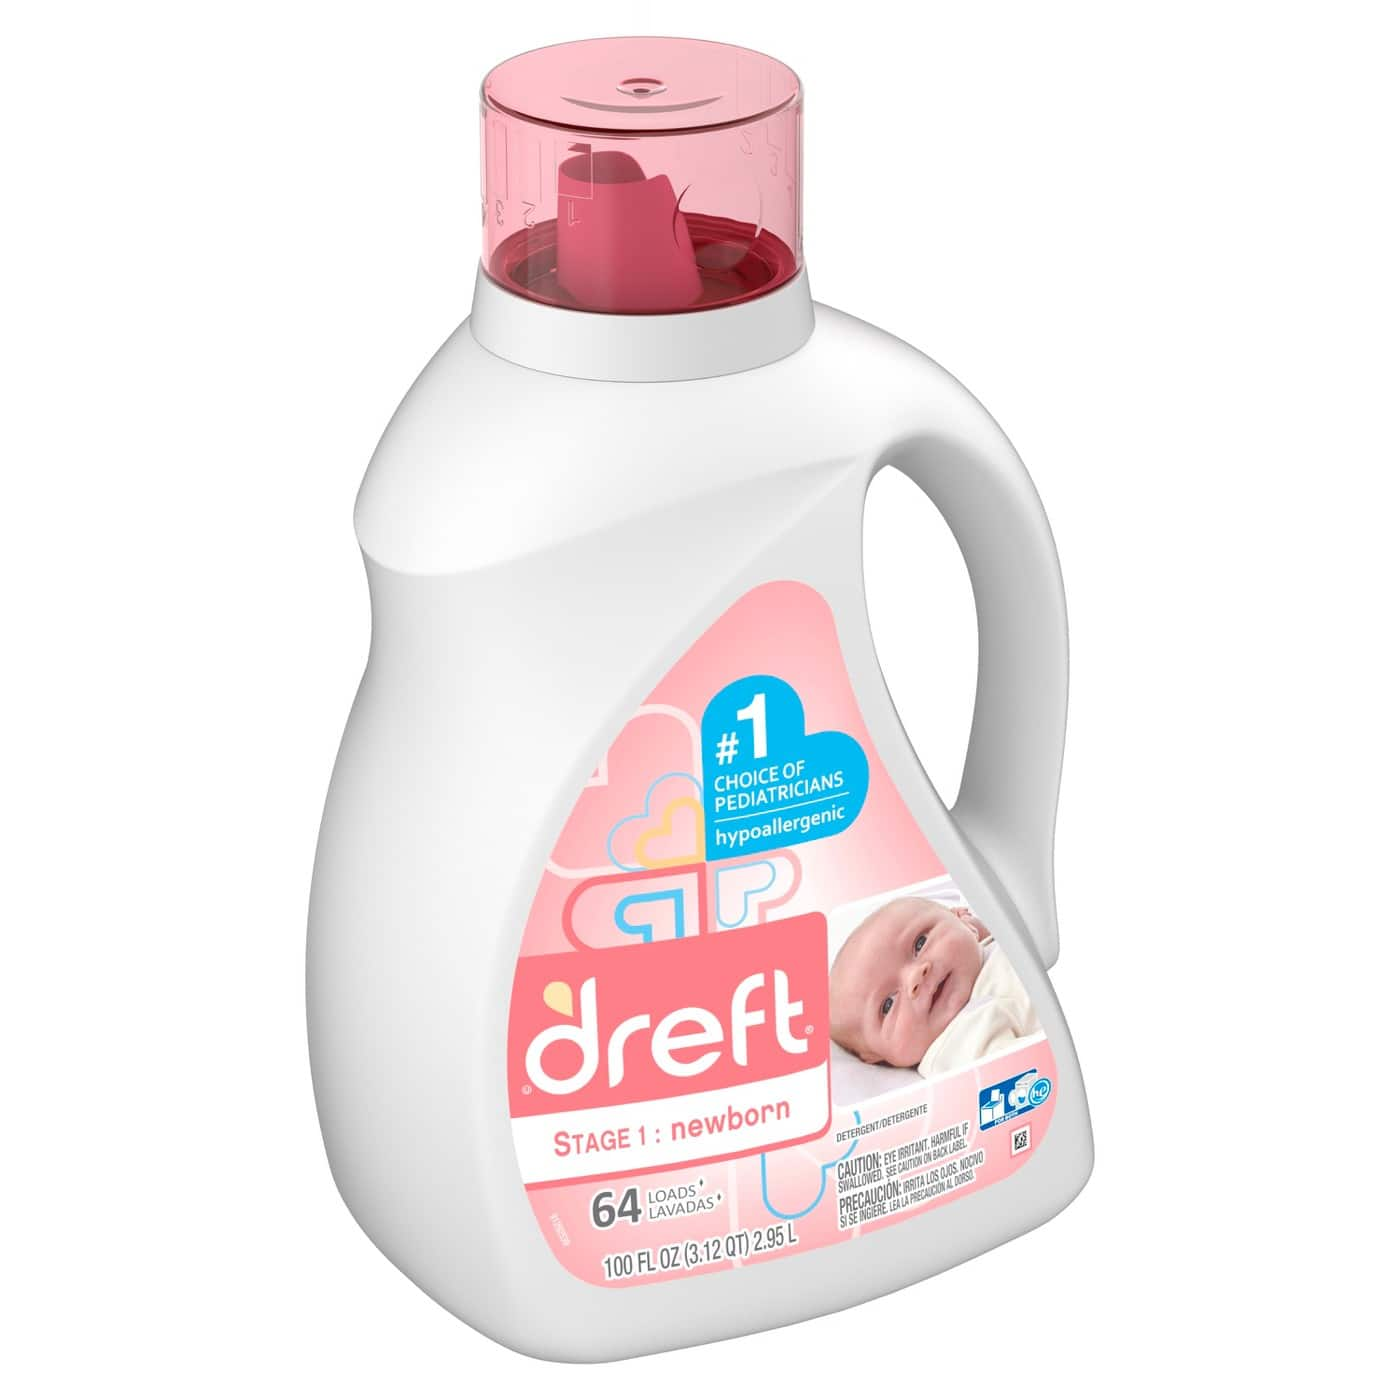 Target Cartwheel: 2 Count 100oz Dreft Stage 1 (or) Stage 2 HEC Liquid Detergent + $5 Target GC $25.50 w/ S&S + Free pickup